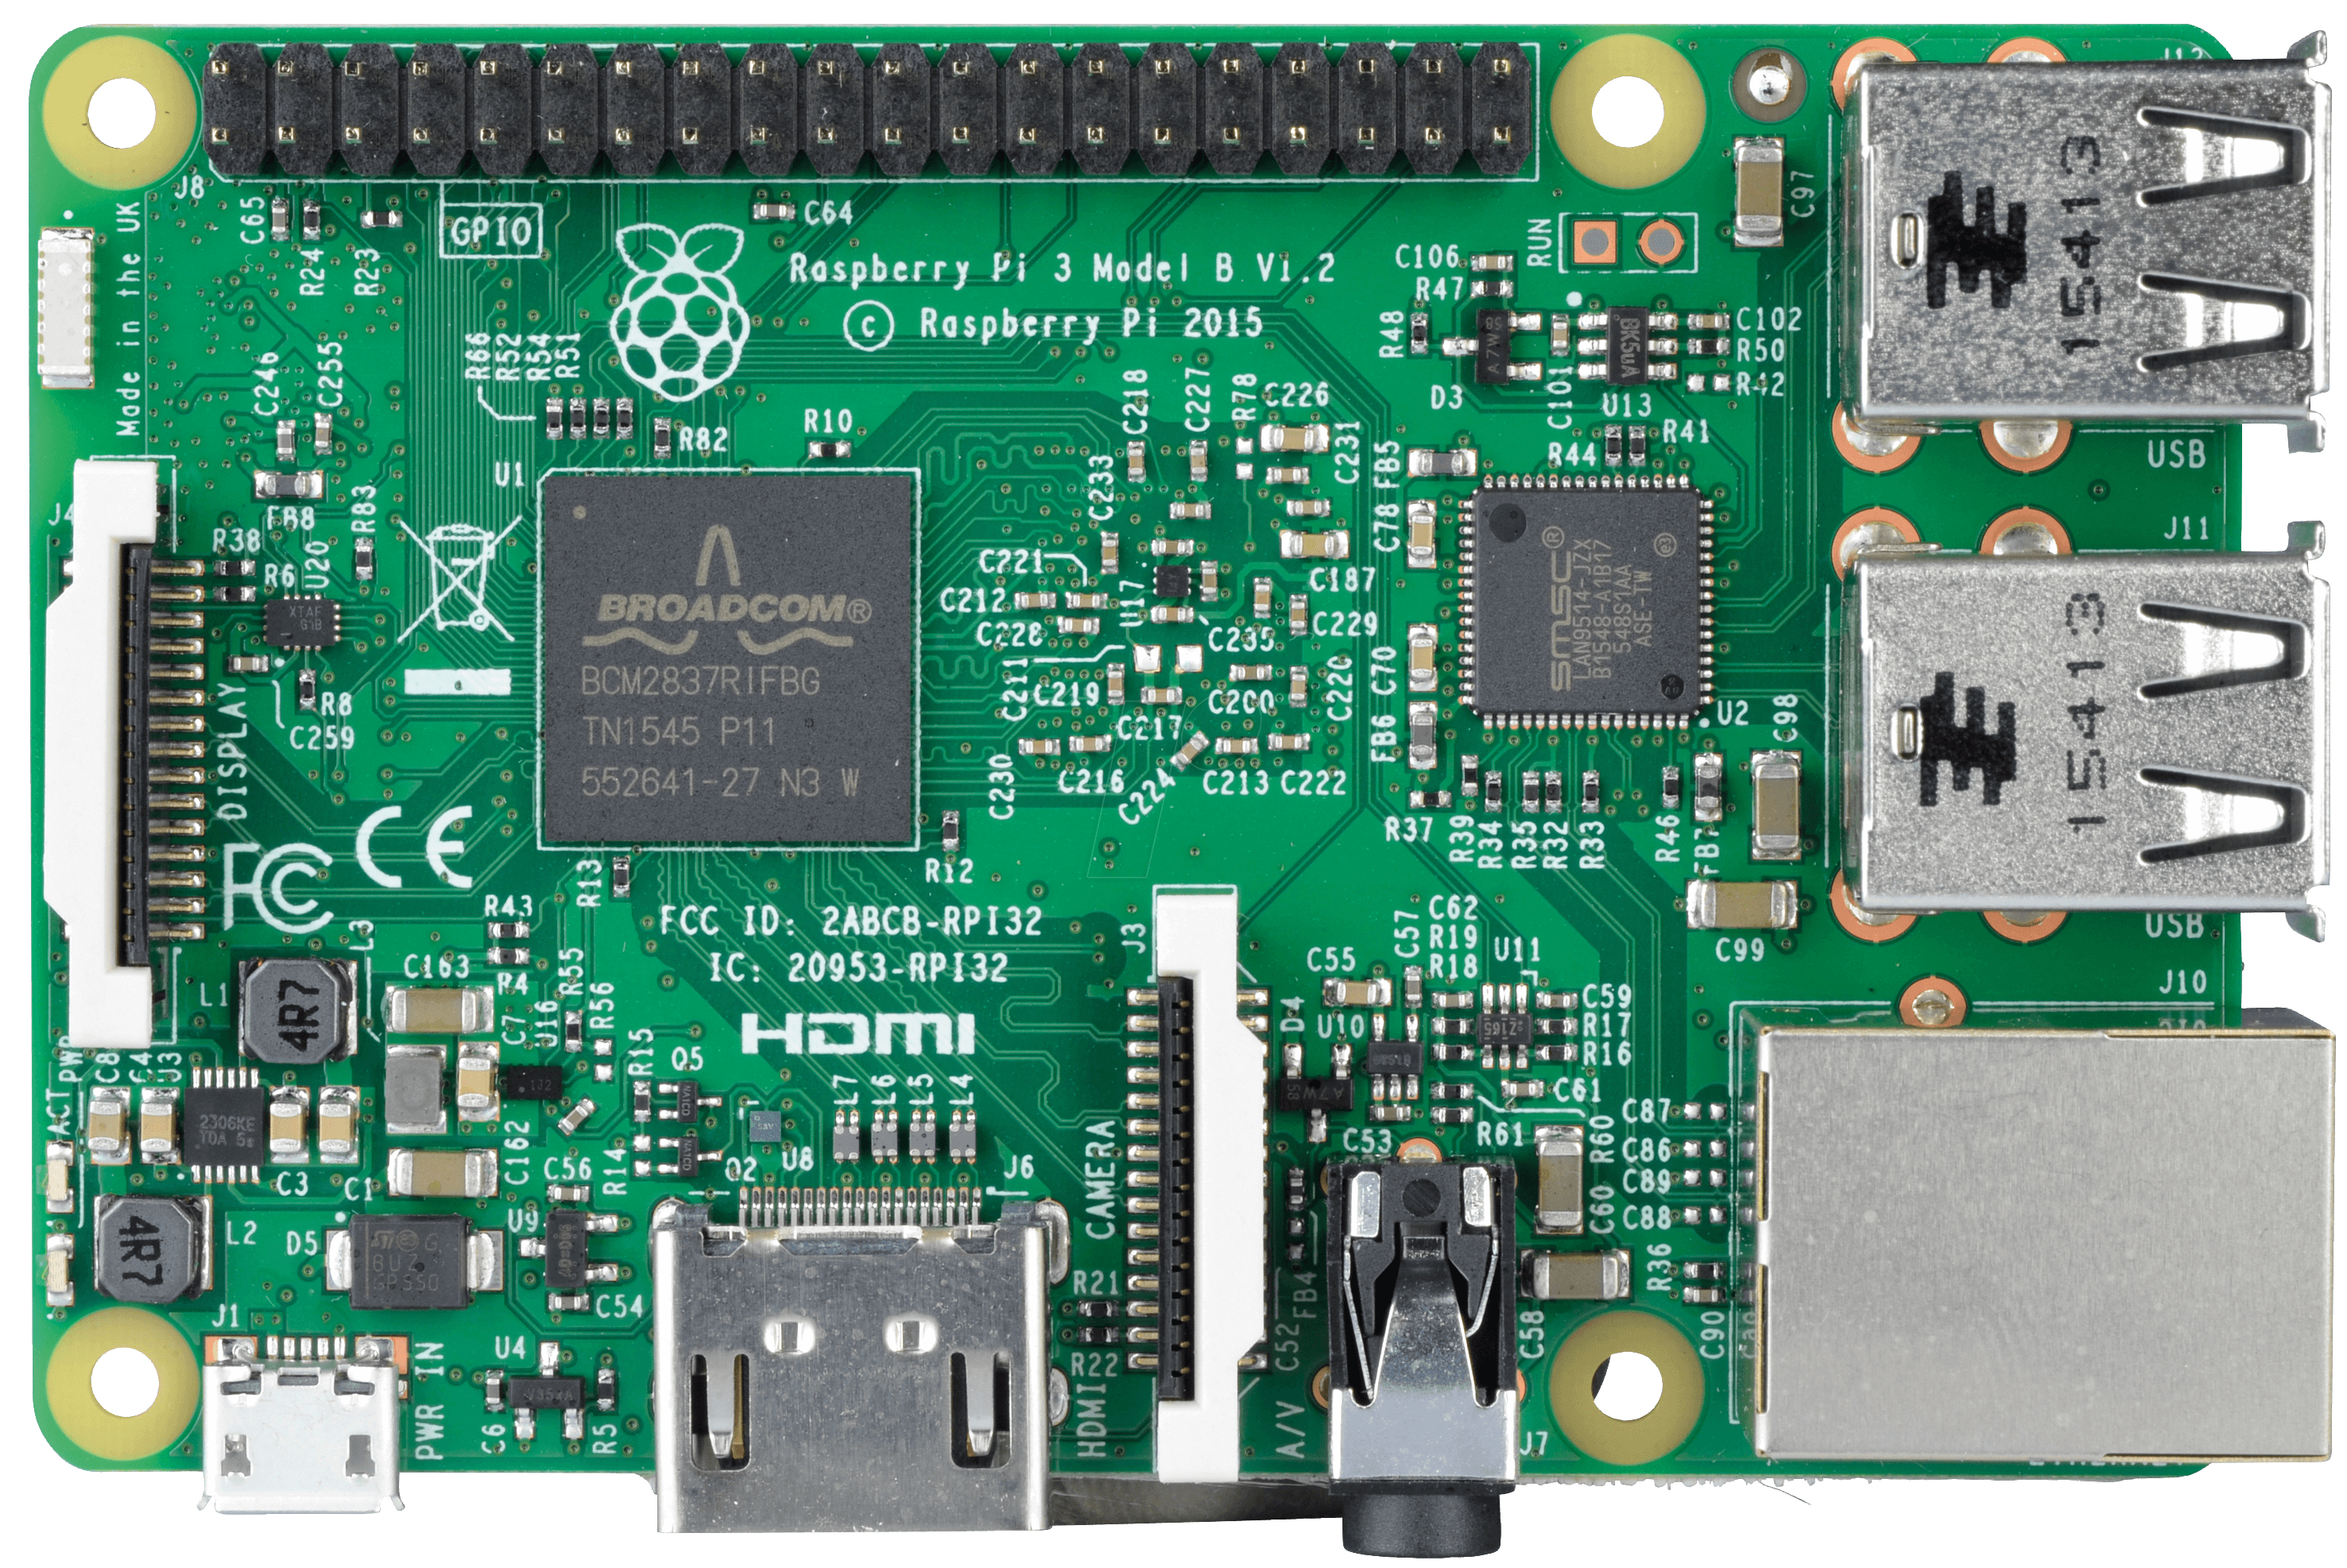 Raspberry pi 3 download image